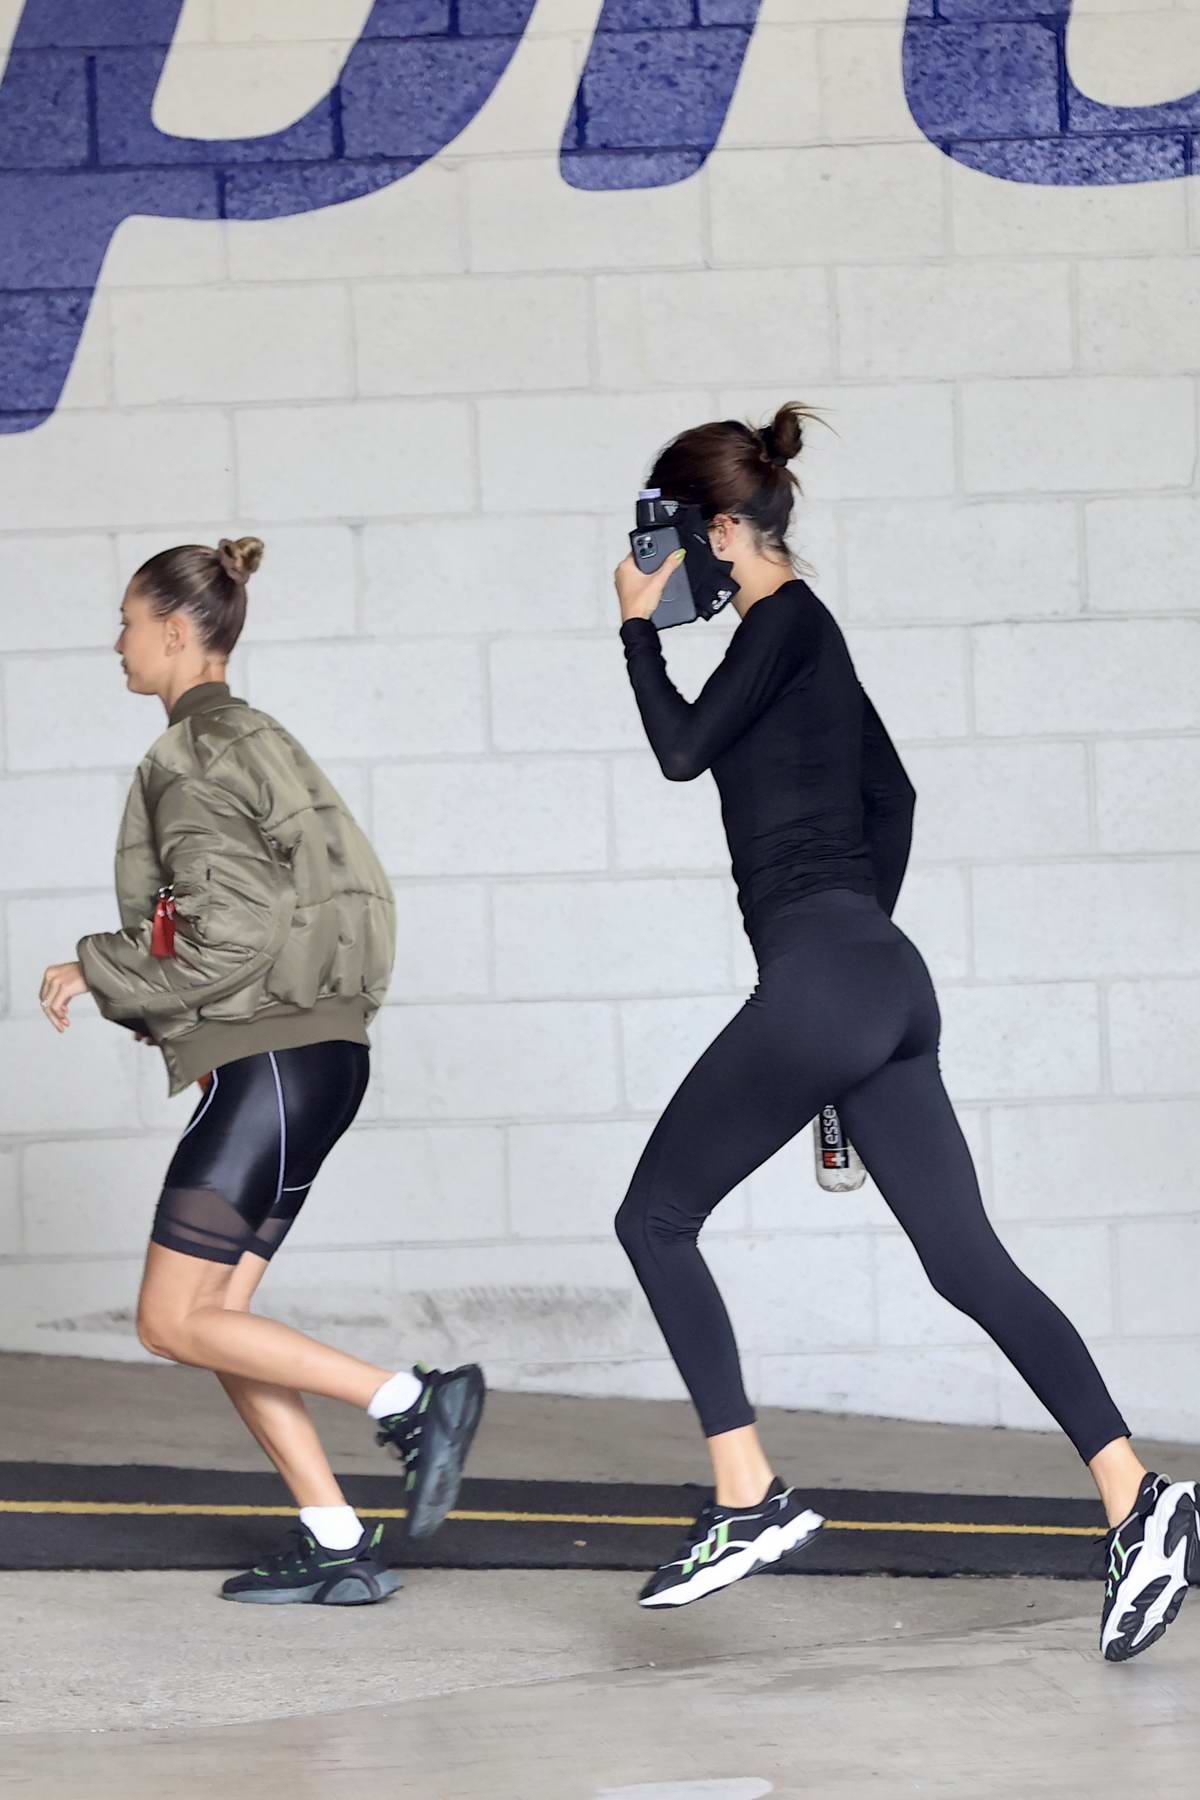 Kendall Jenner and Hailey Bieber hit the gym together in Beverly Hills, California